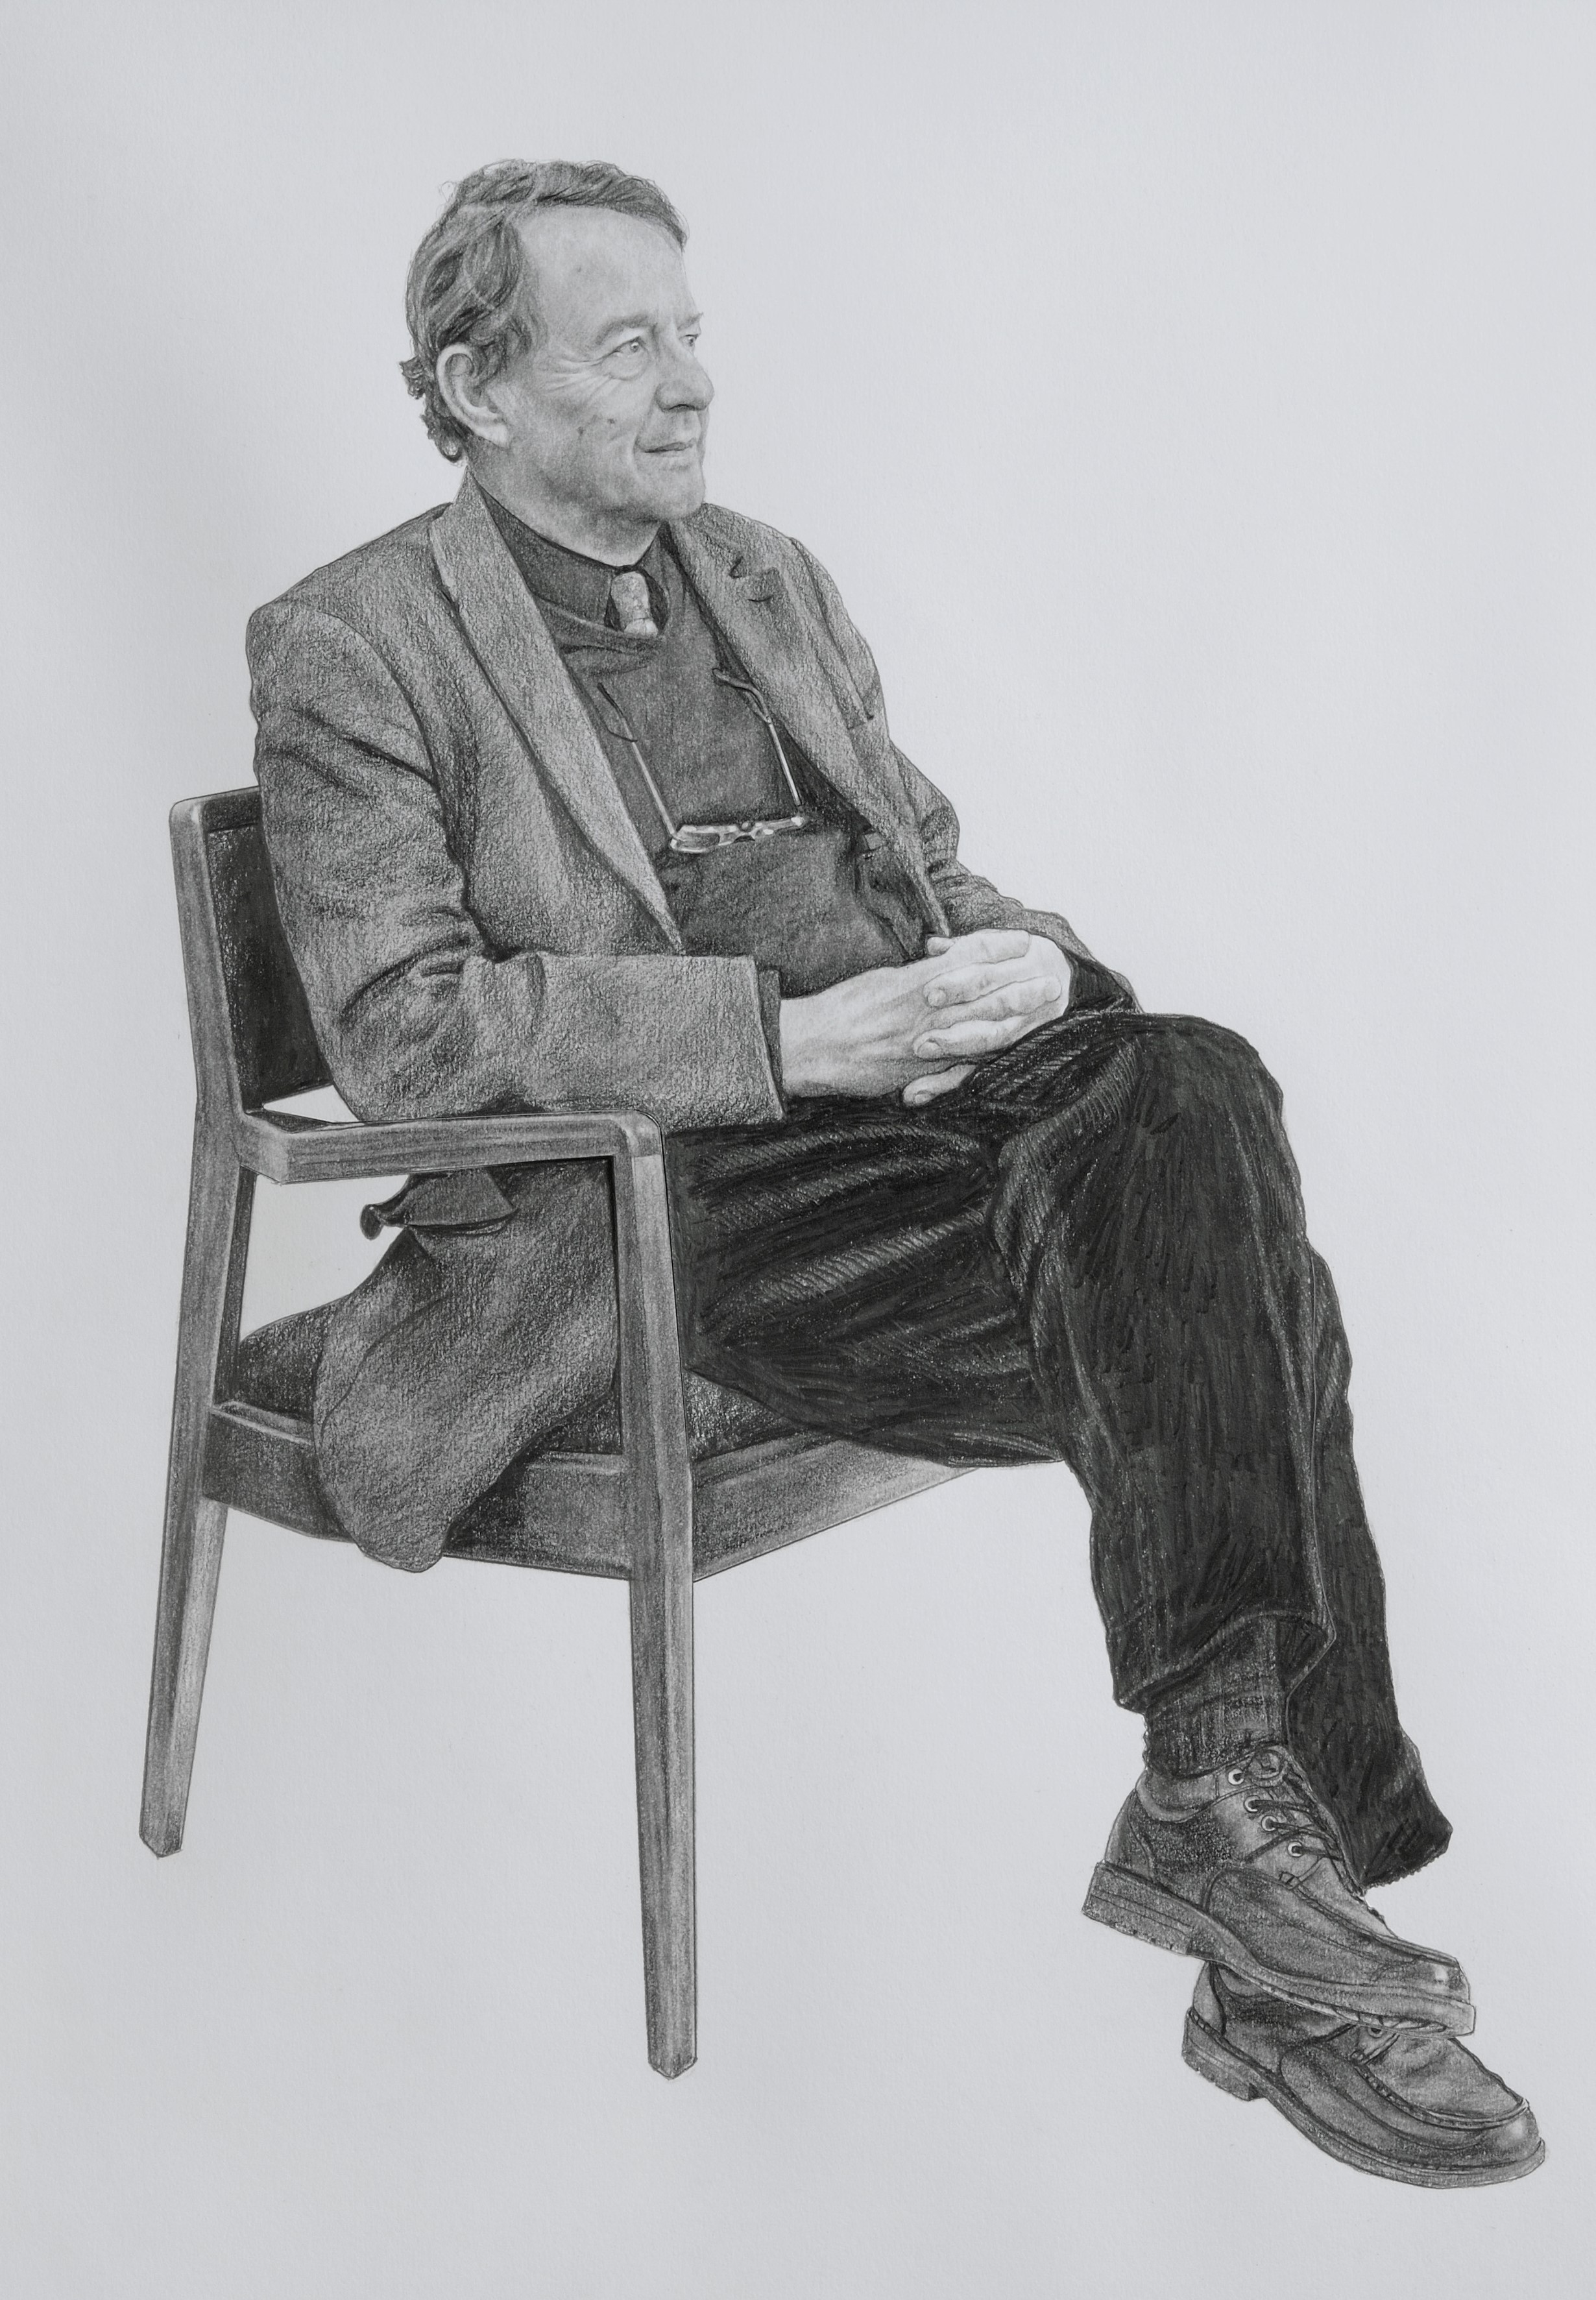 Martin Ceadel (Pencil on paper)